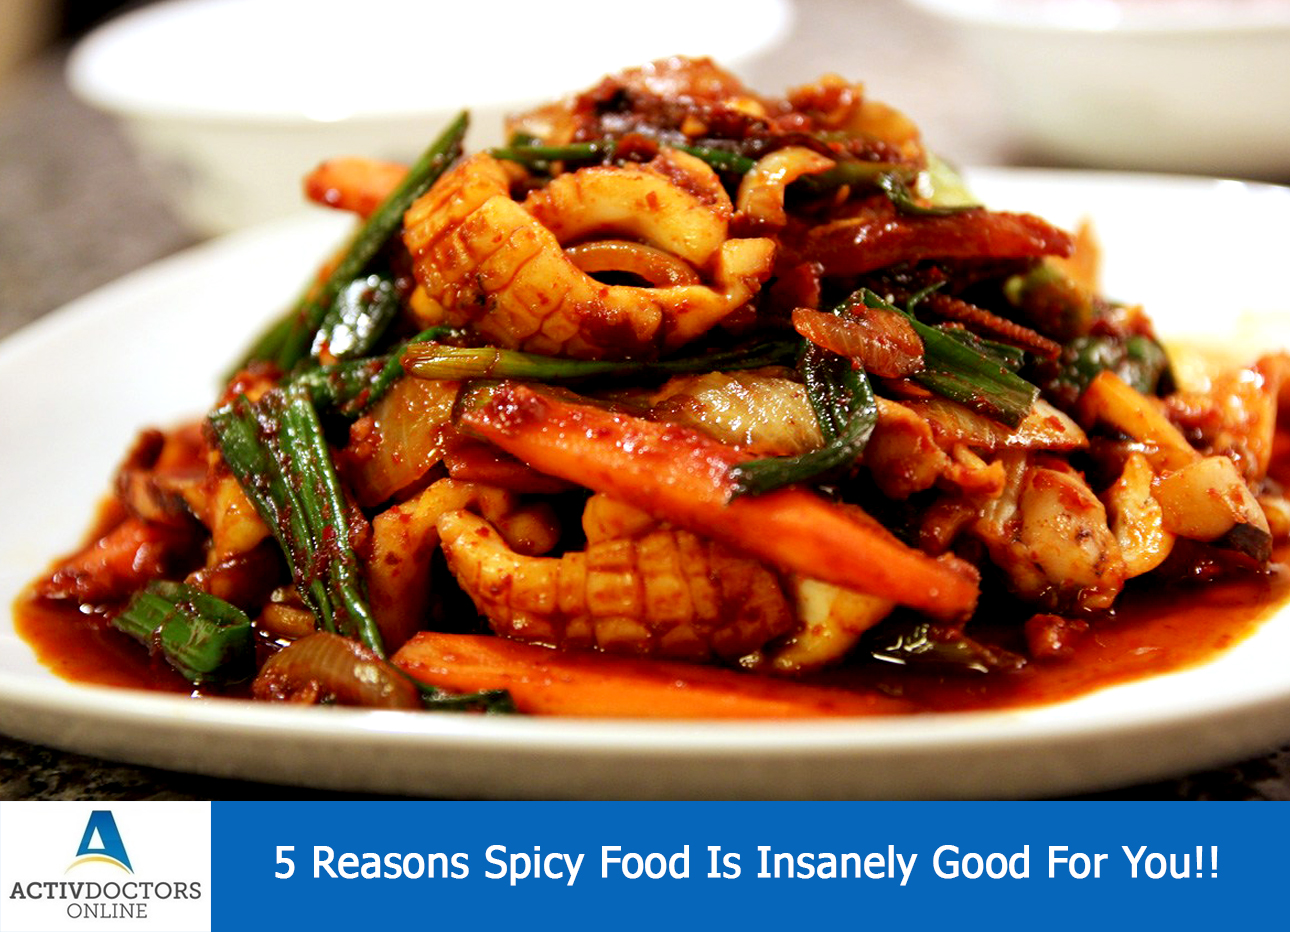 5 Reasons Spicy Food Is Insanely Good For You